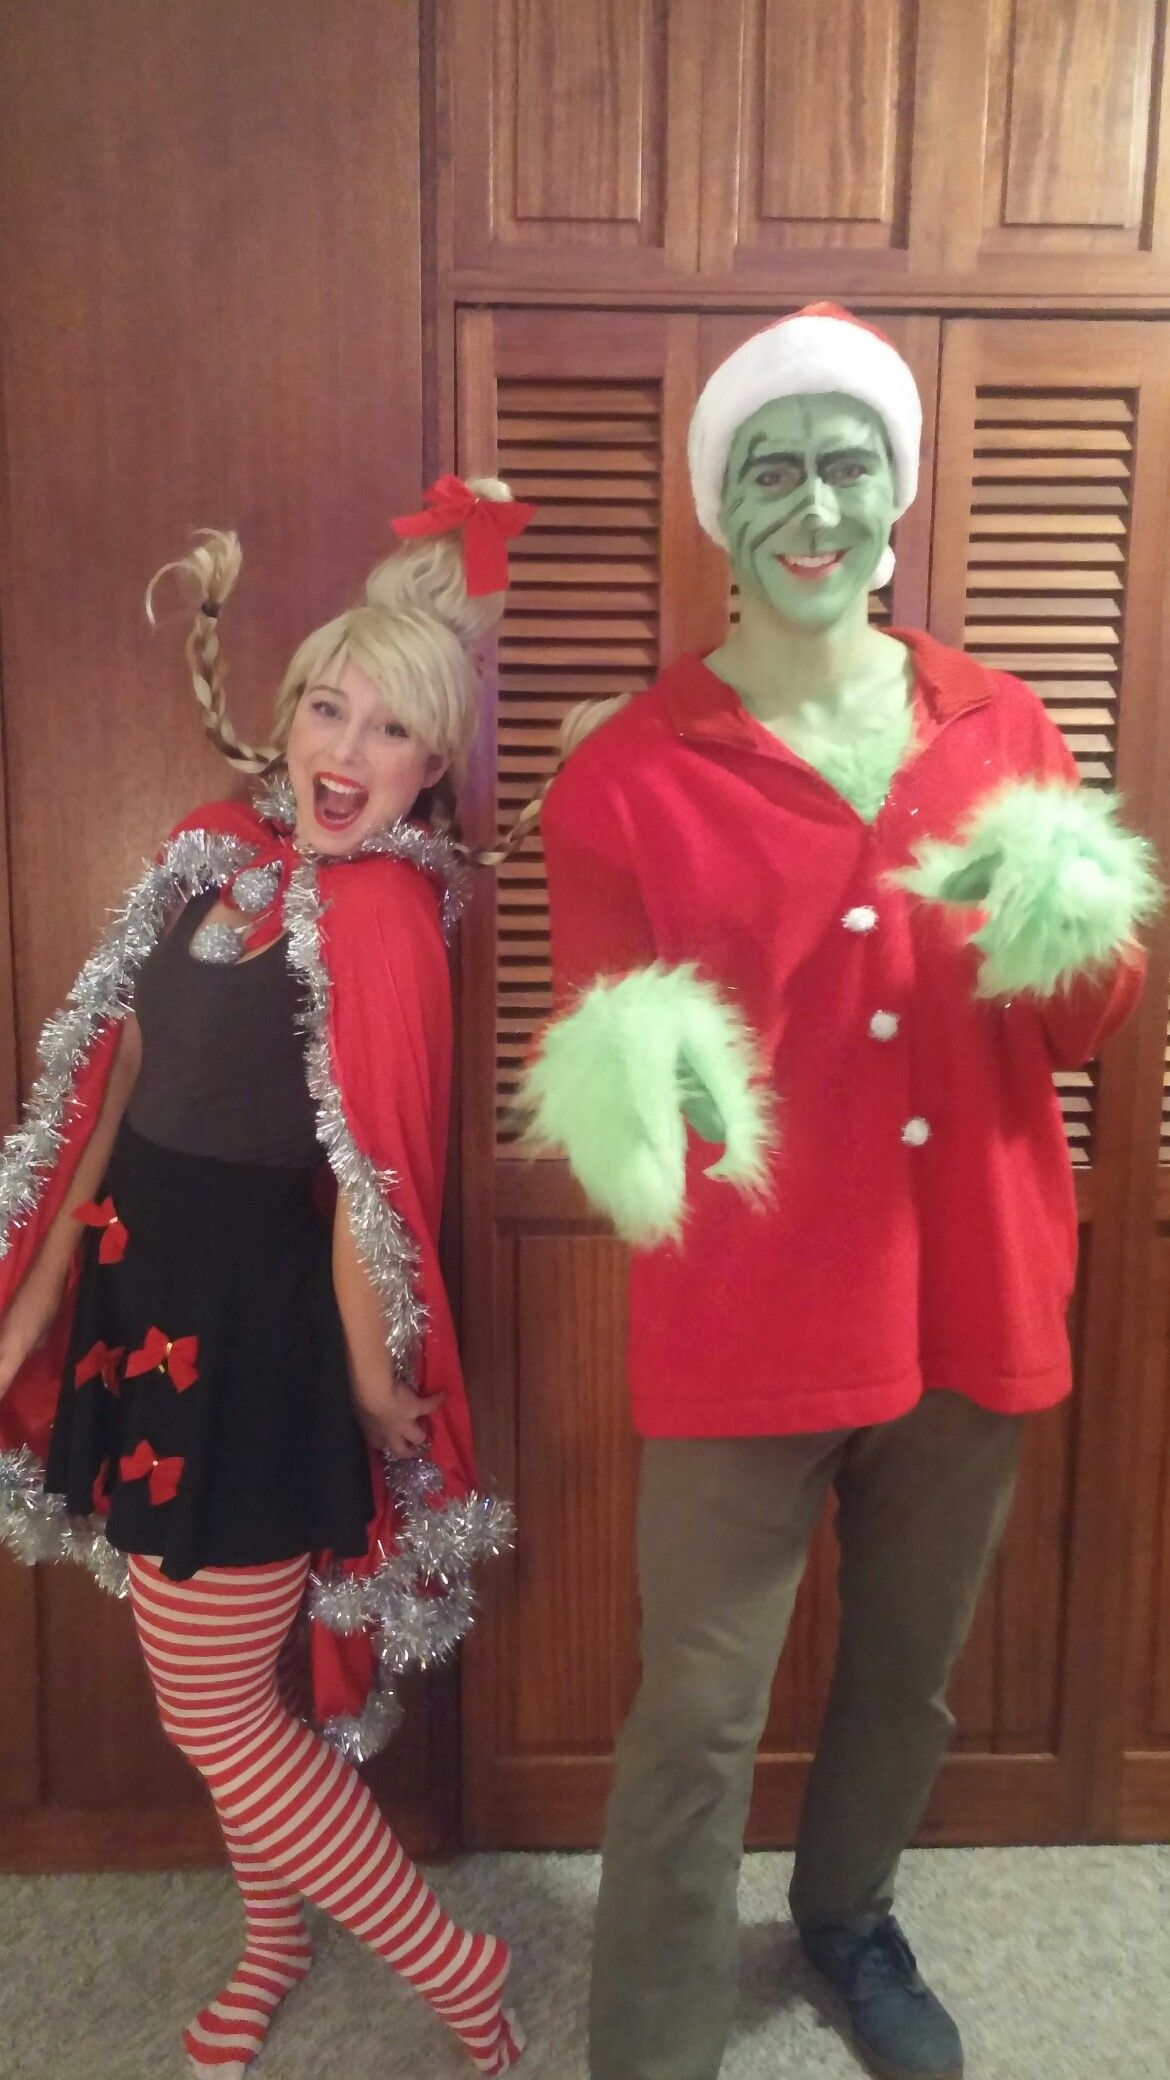 Cindy lou who and the grinch diy halloween costume by bradie jackson cindy lou who and the grinch diy halloween costume by bradie jackson solutioingenieria Choice Image